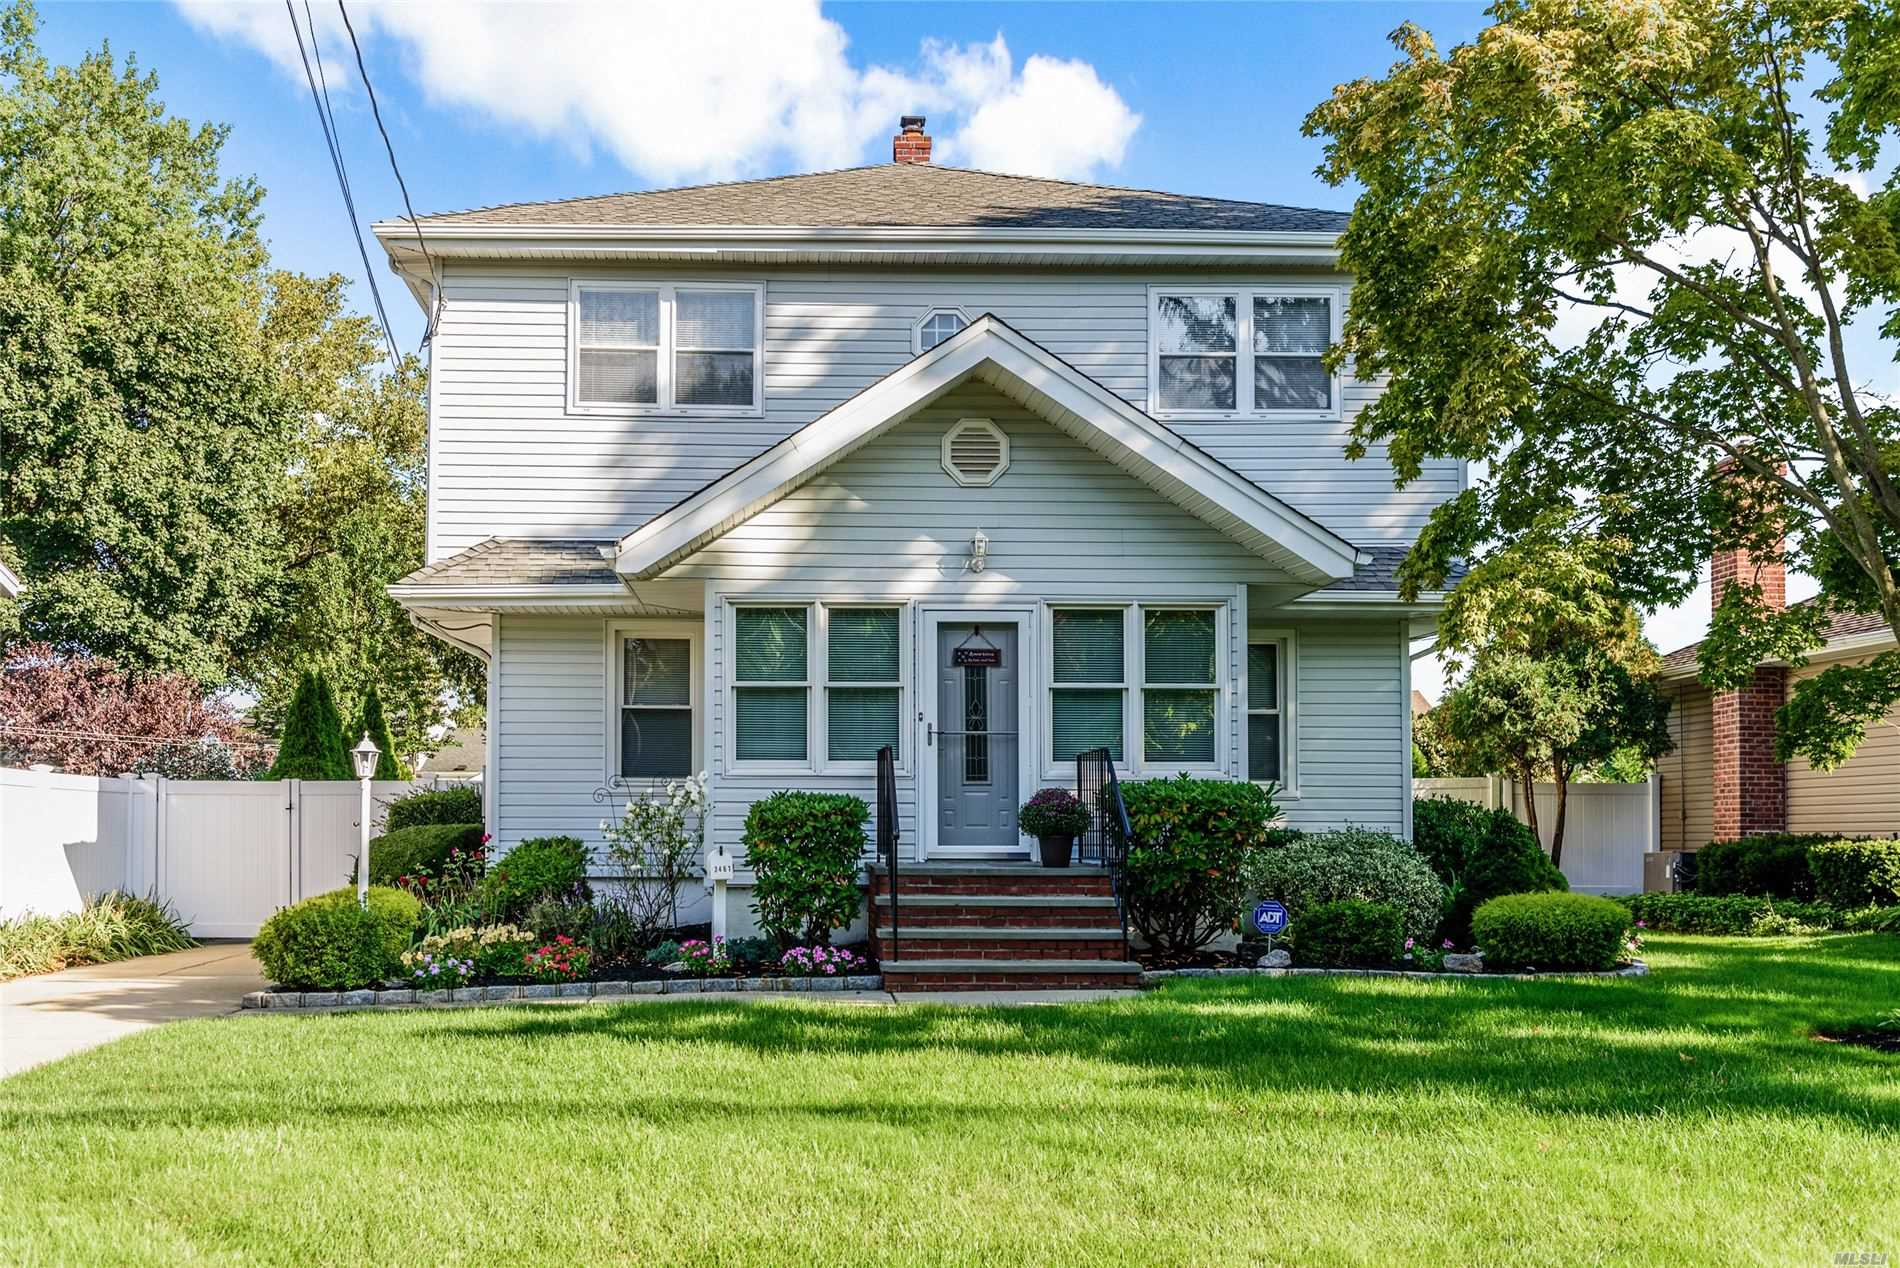 One of Wantagh 4 Bedroom Homes for Sale at 3461 Lufberry Ave